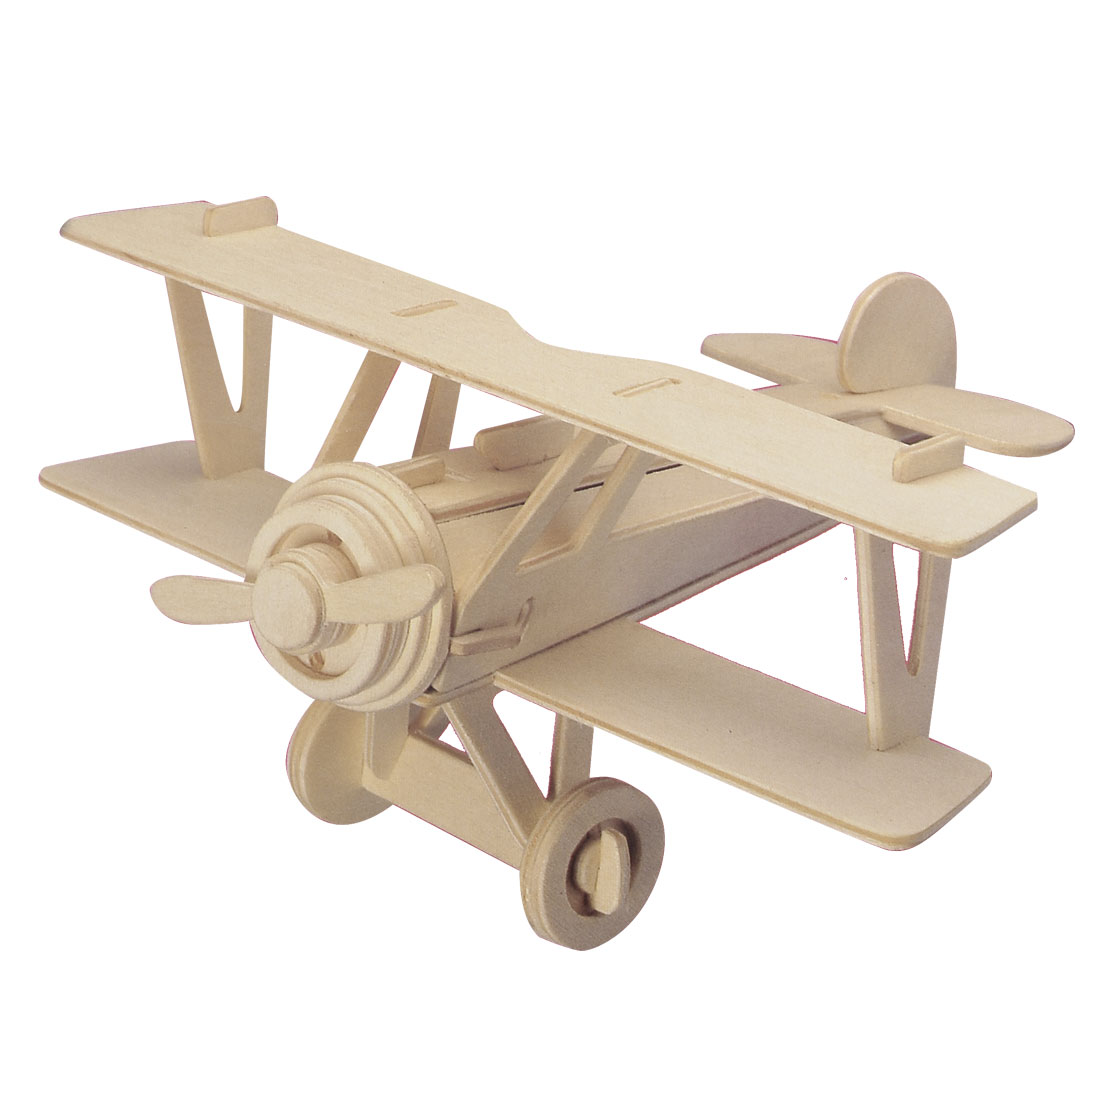 Self Assembly Wooden Nieuport 17 Model 3D Puzzle Woodcraft Construction Kit